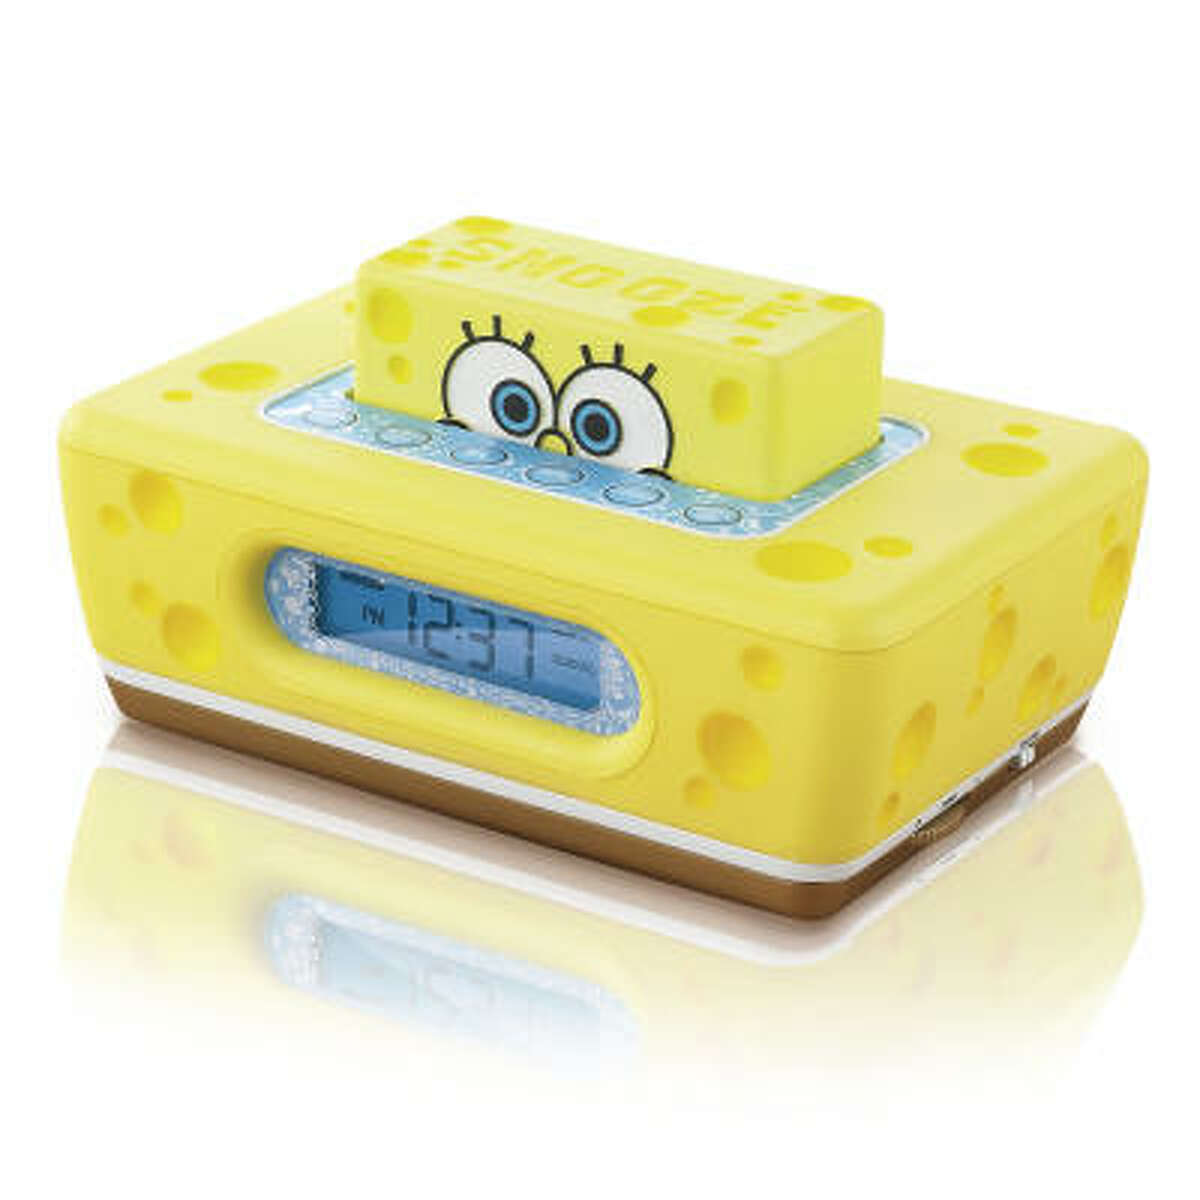 Hit the snooze button when the Clock-It Alarm Clock goes off, unleashing seaworthy sounds from seagulls to foghorns, and SpongeBob's baby blues slide back into the sponge-like clock body.